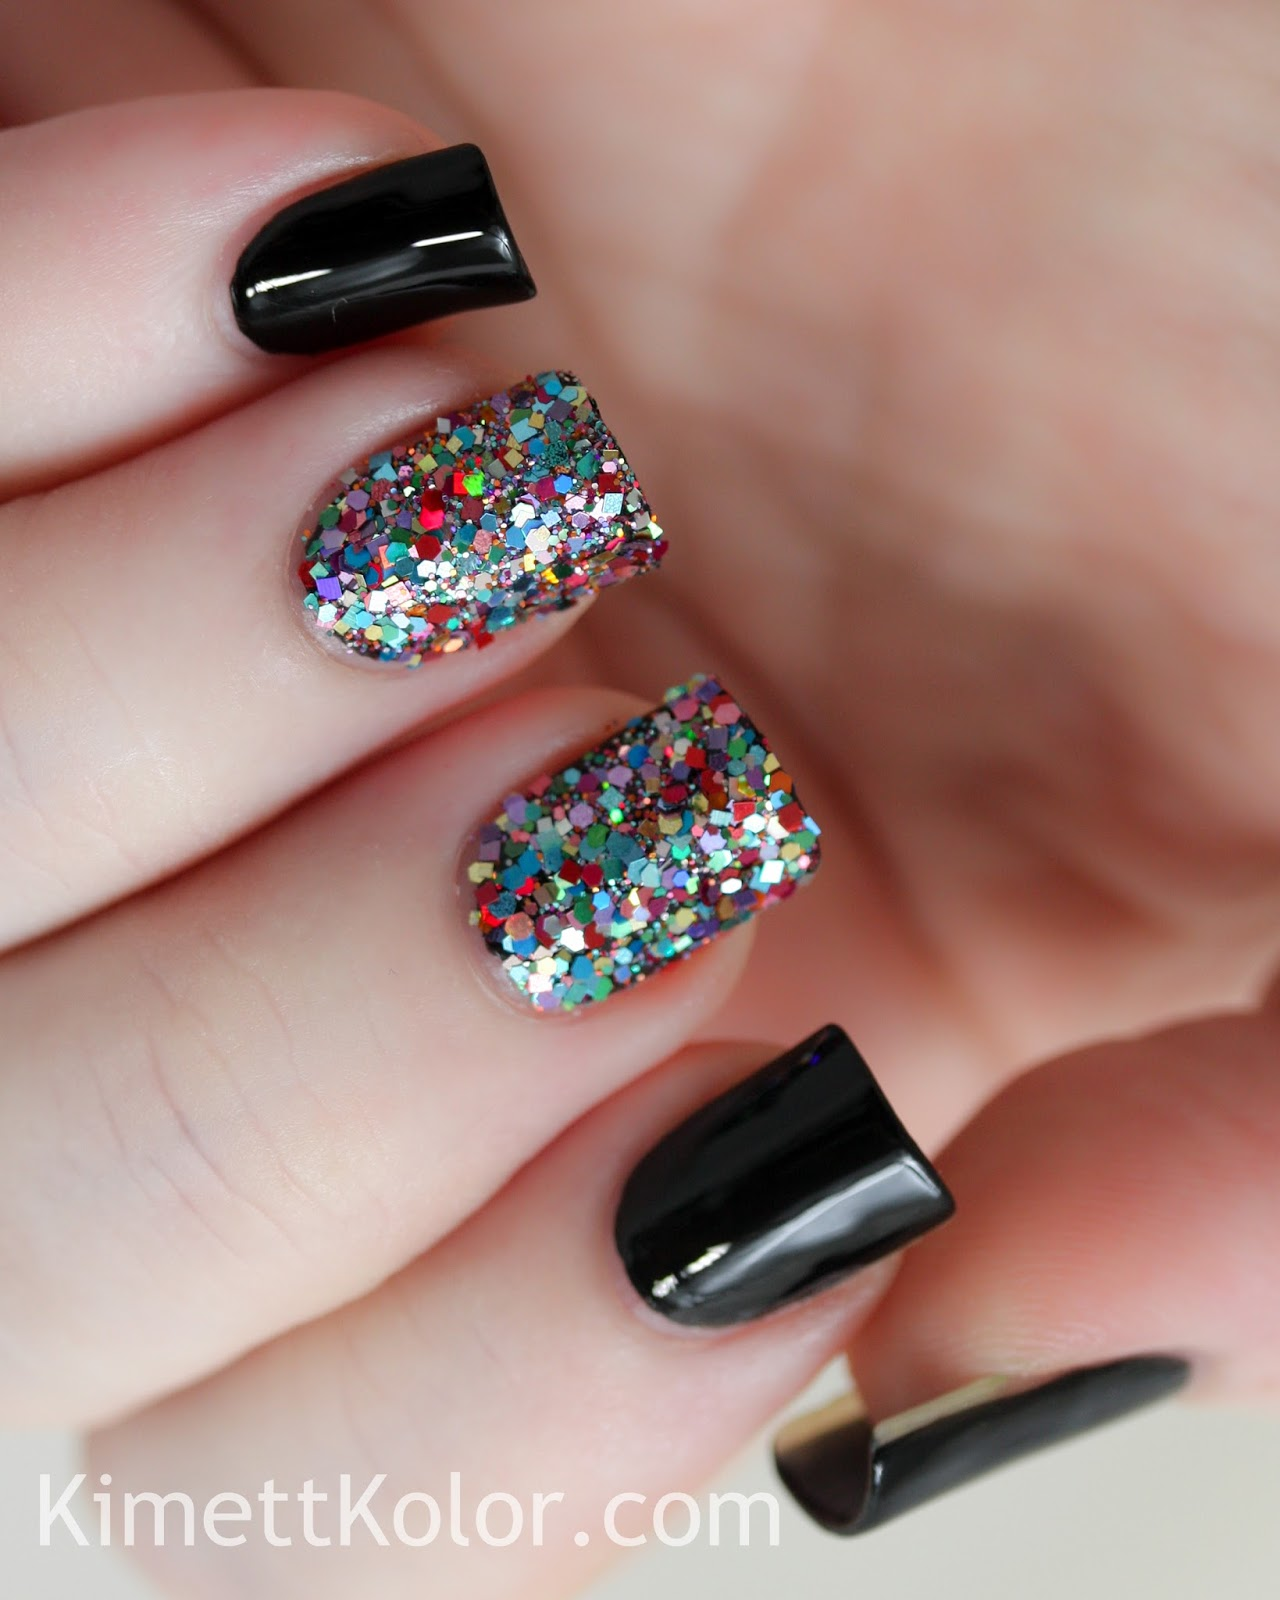 Glitter Nail Trends: Glitter Covered Nails...with Stamping!